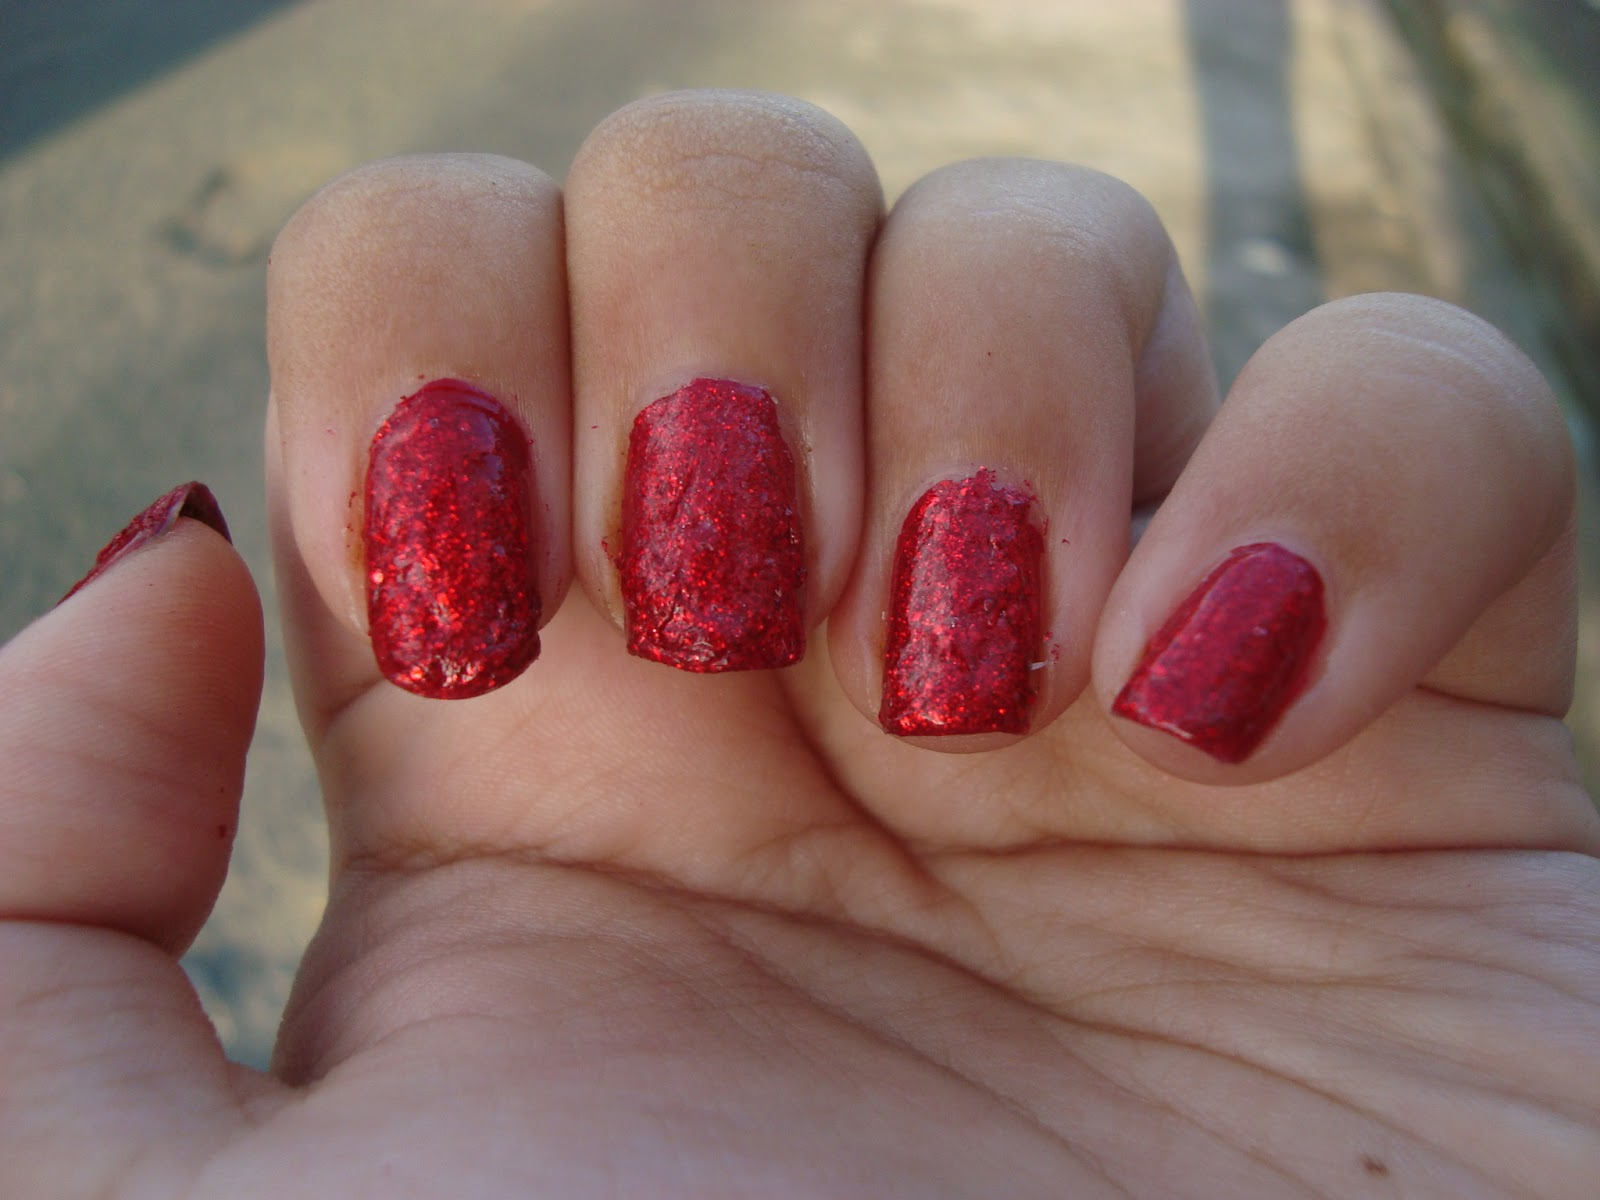 Nails | Ring in the Red